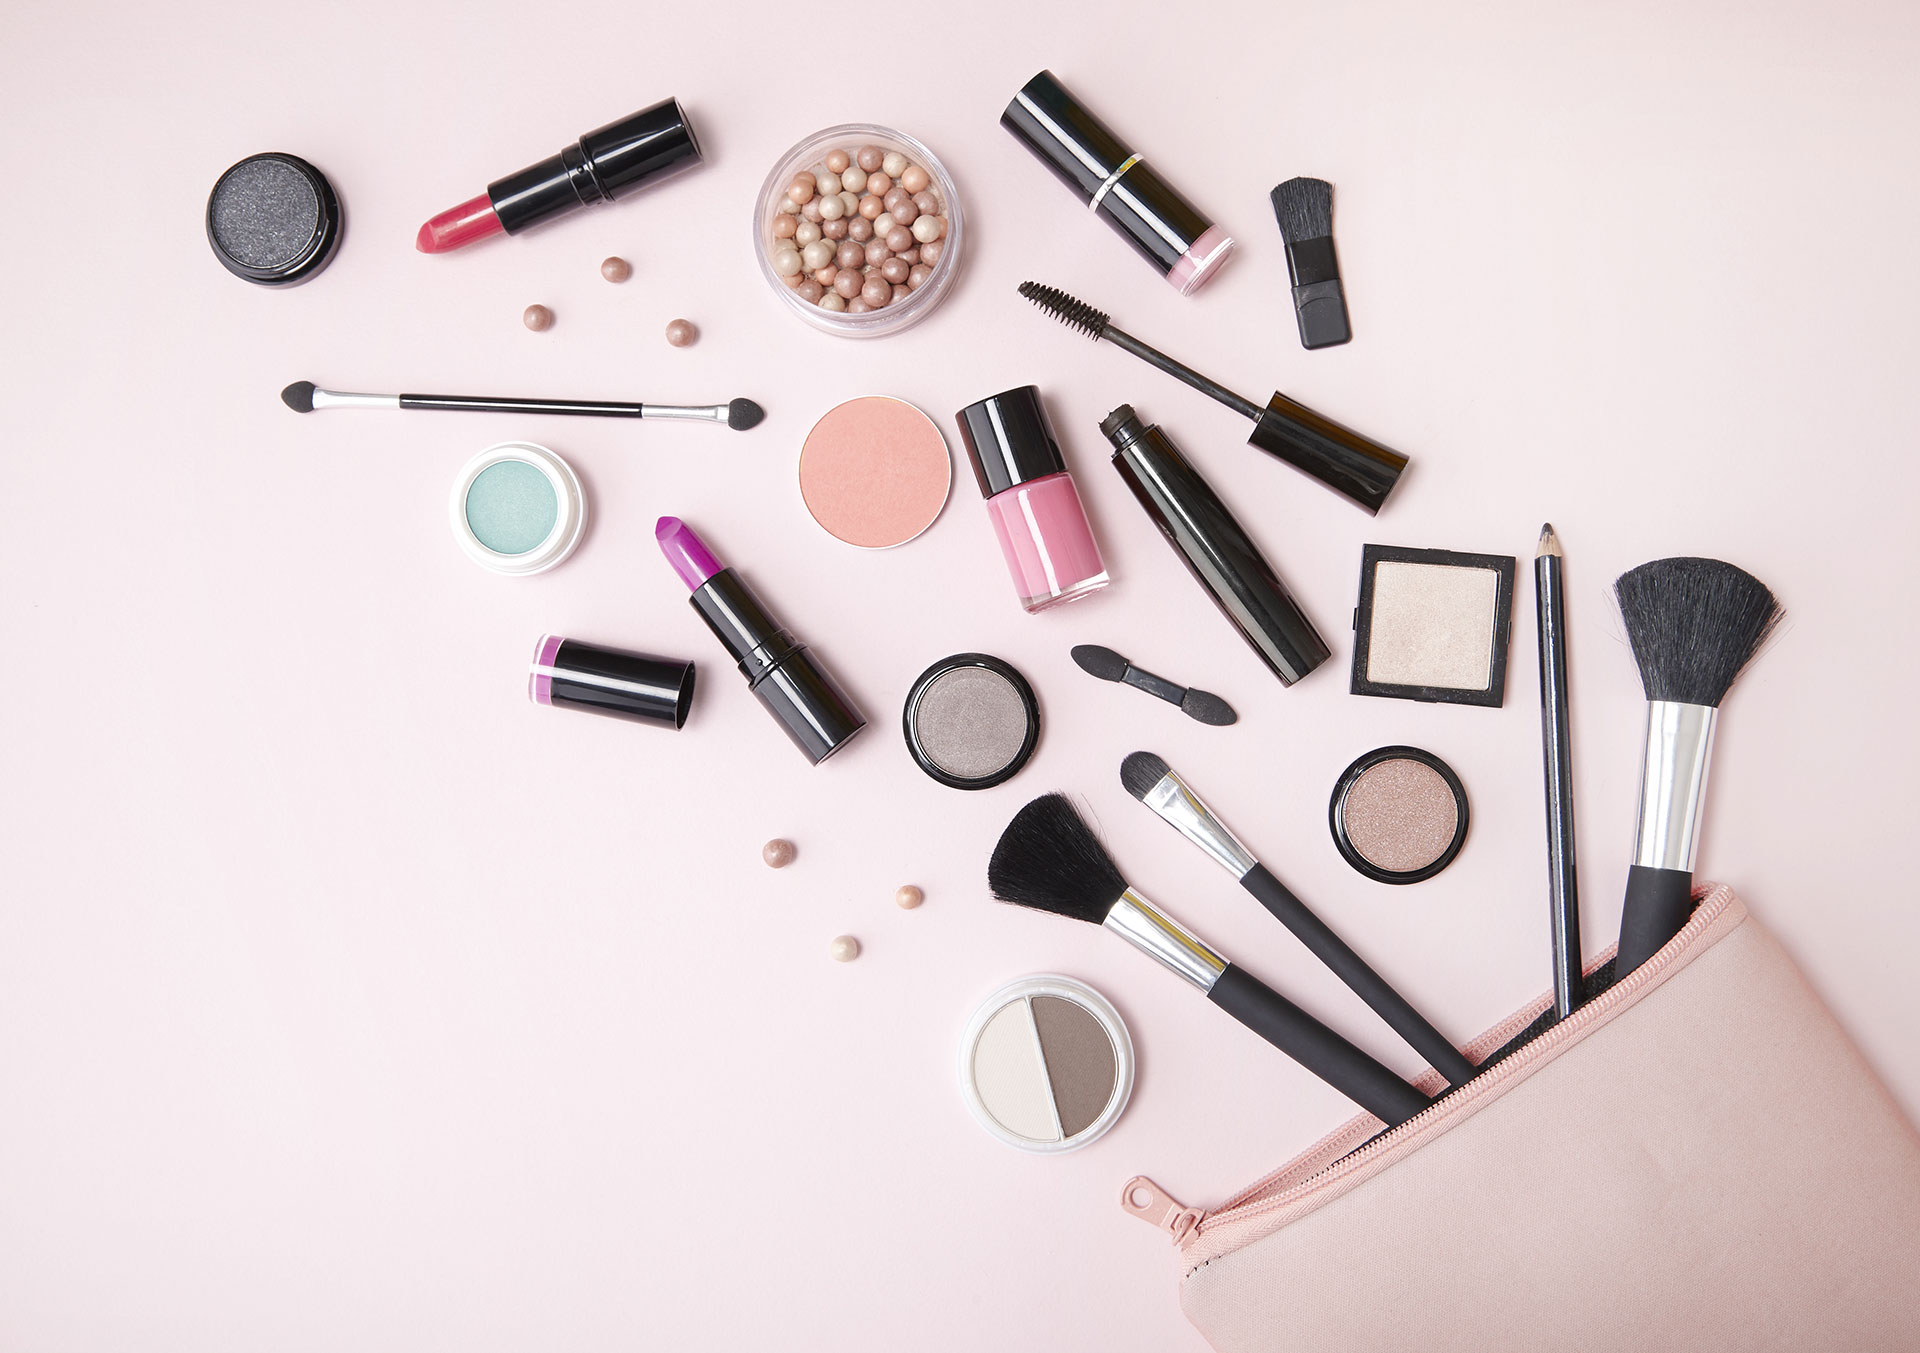 A variety of makeup products with endocrine disrupting chemicals and brushes spilling out of a bag